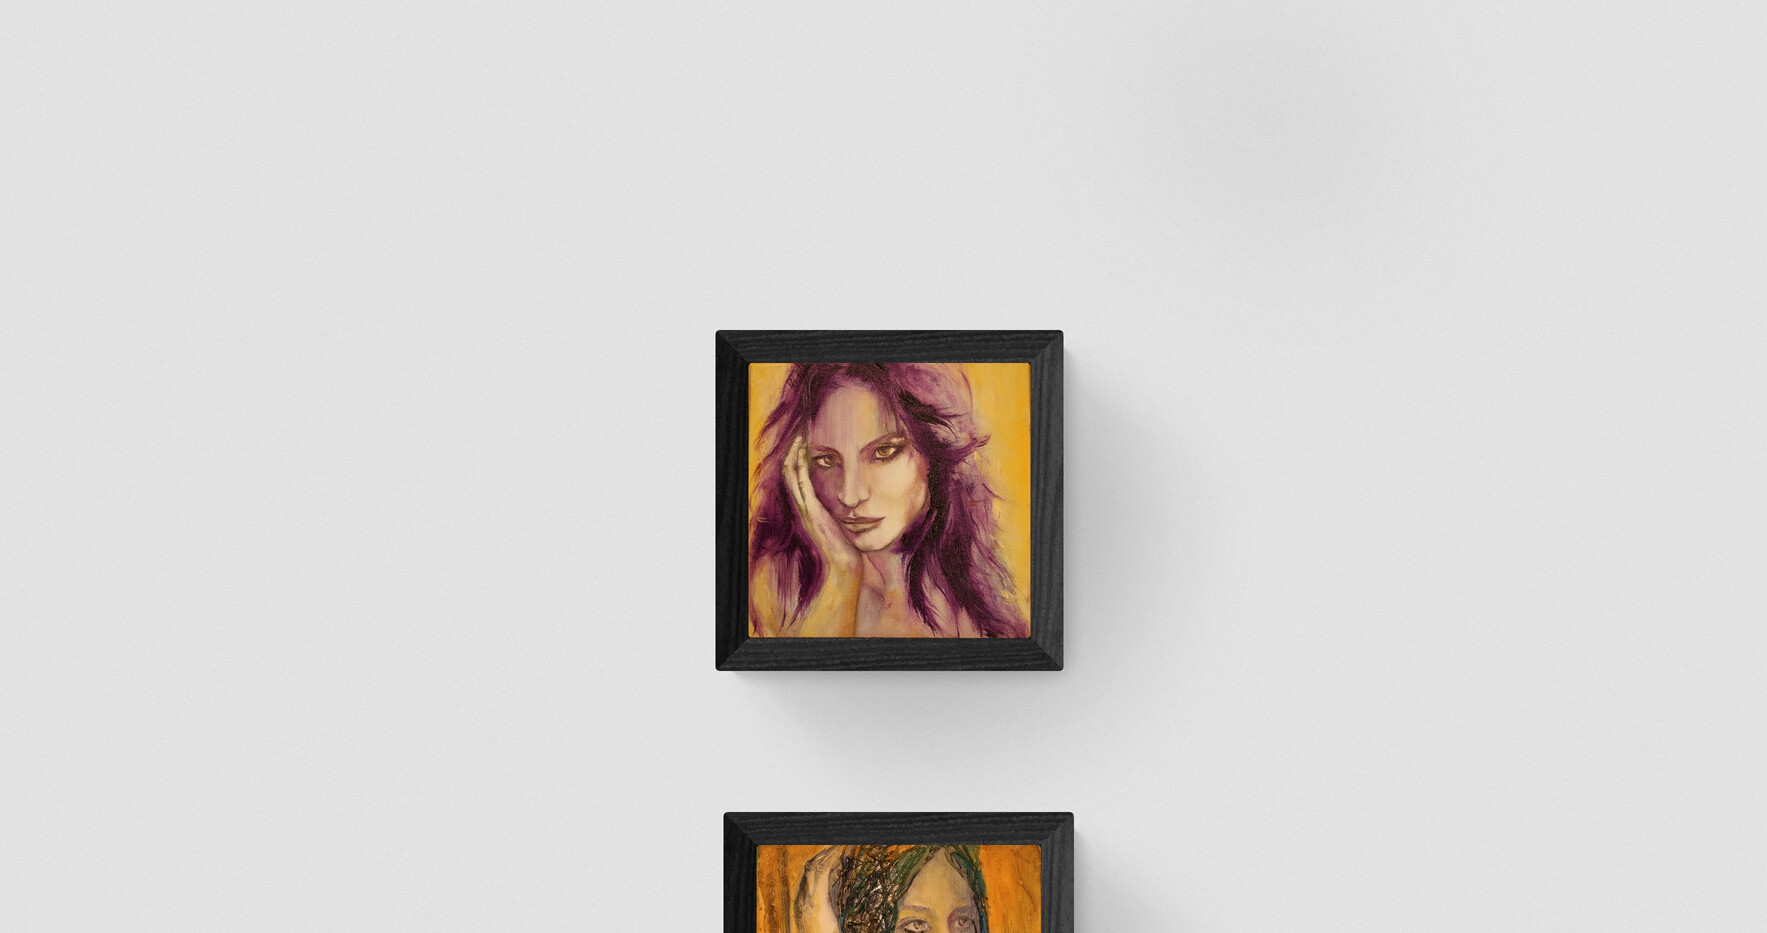 oil-portrait-woman-canvas-decor